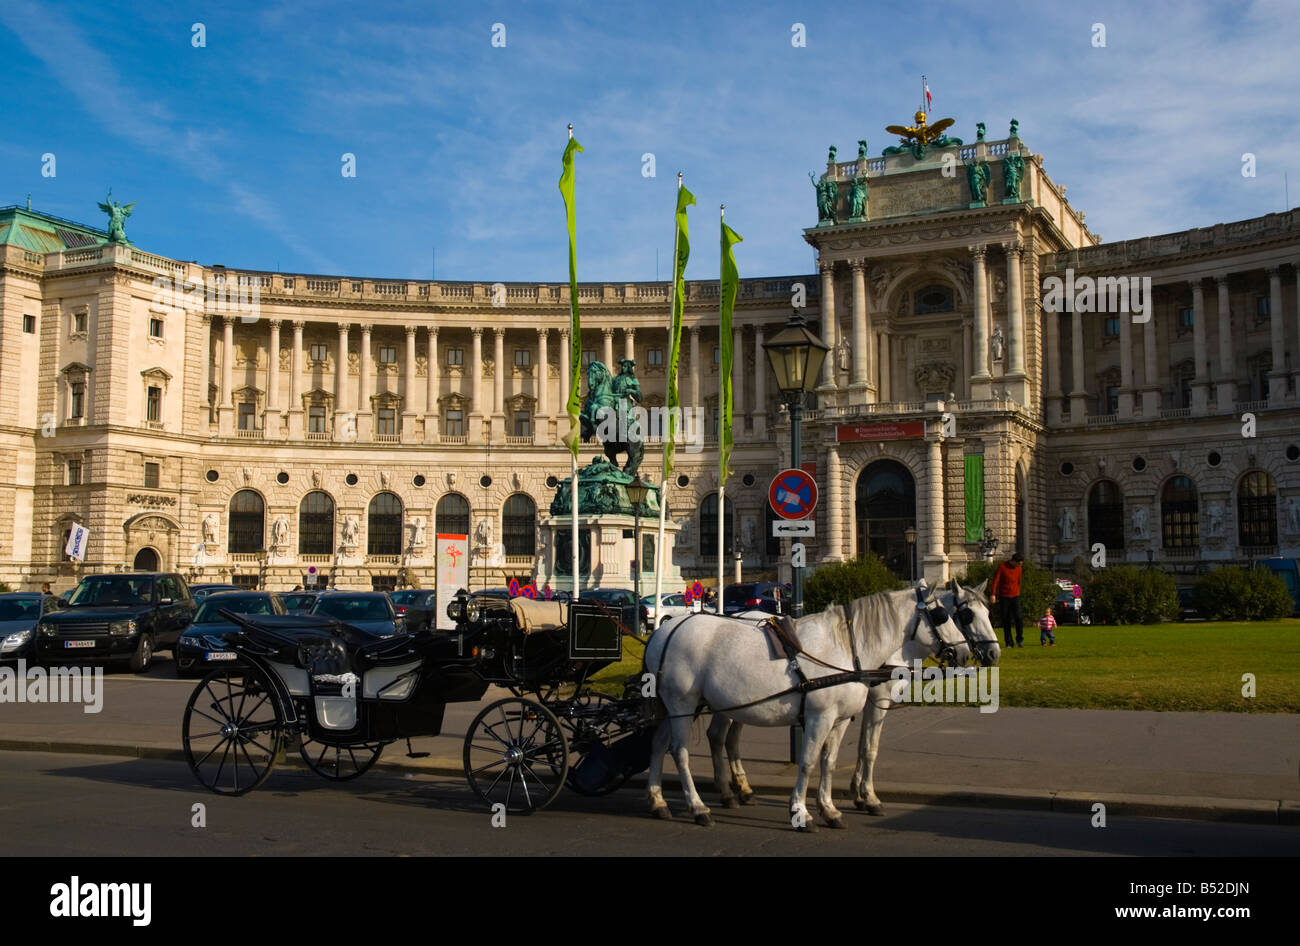 Fiakers the horse drawn sightseeing carriage in front of Hofsburg castle at Heldenplatz square in Vienna Austria - Stock Image